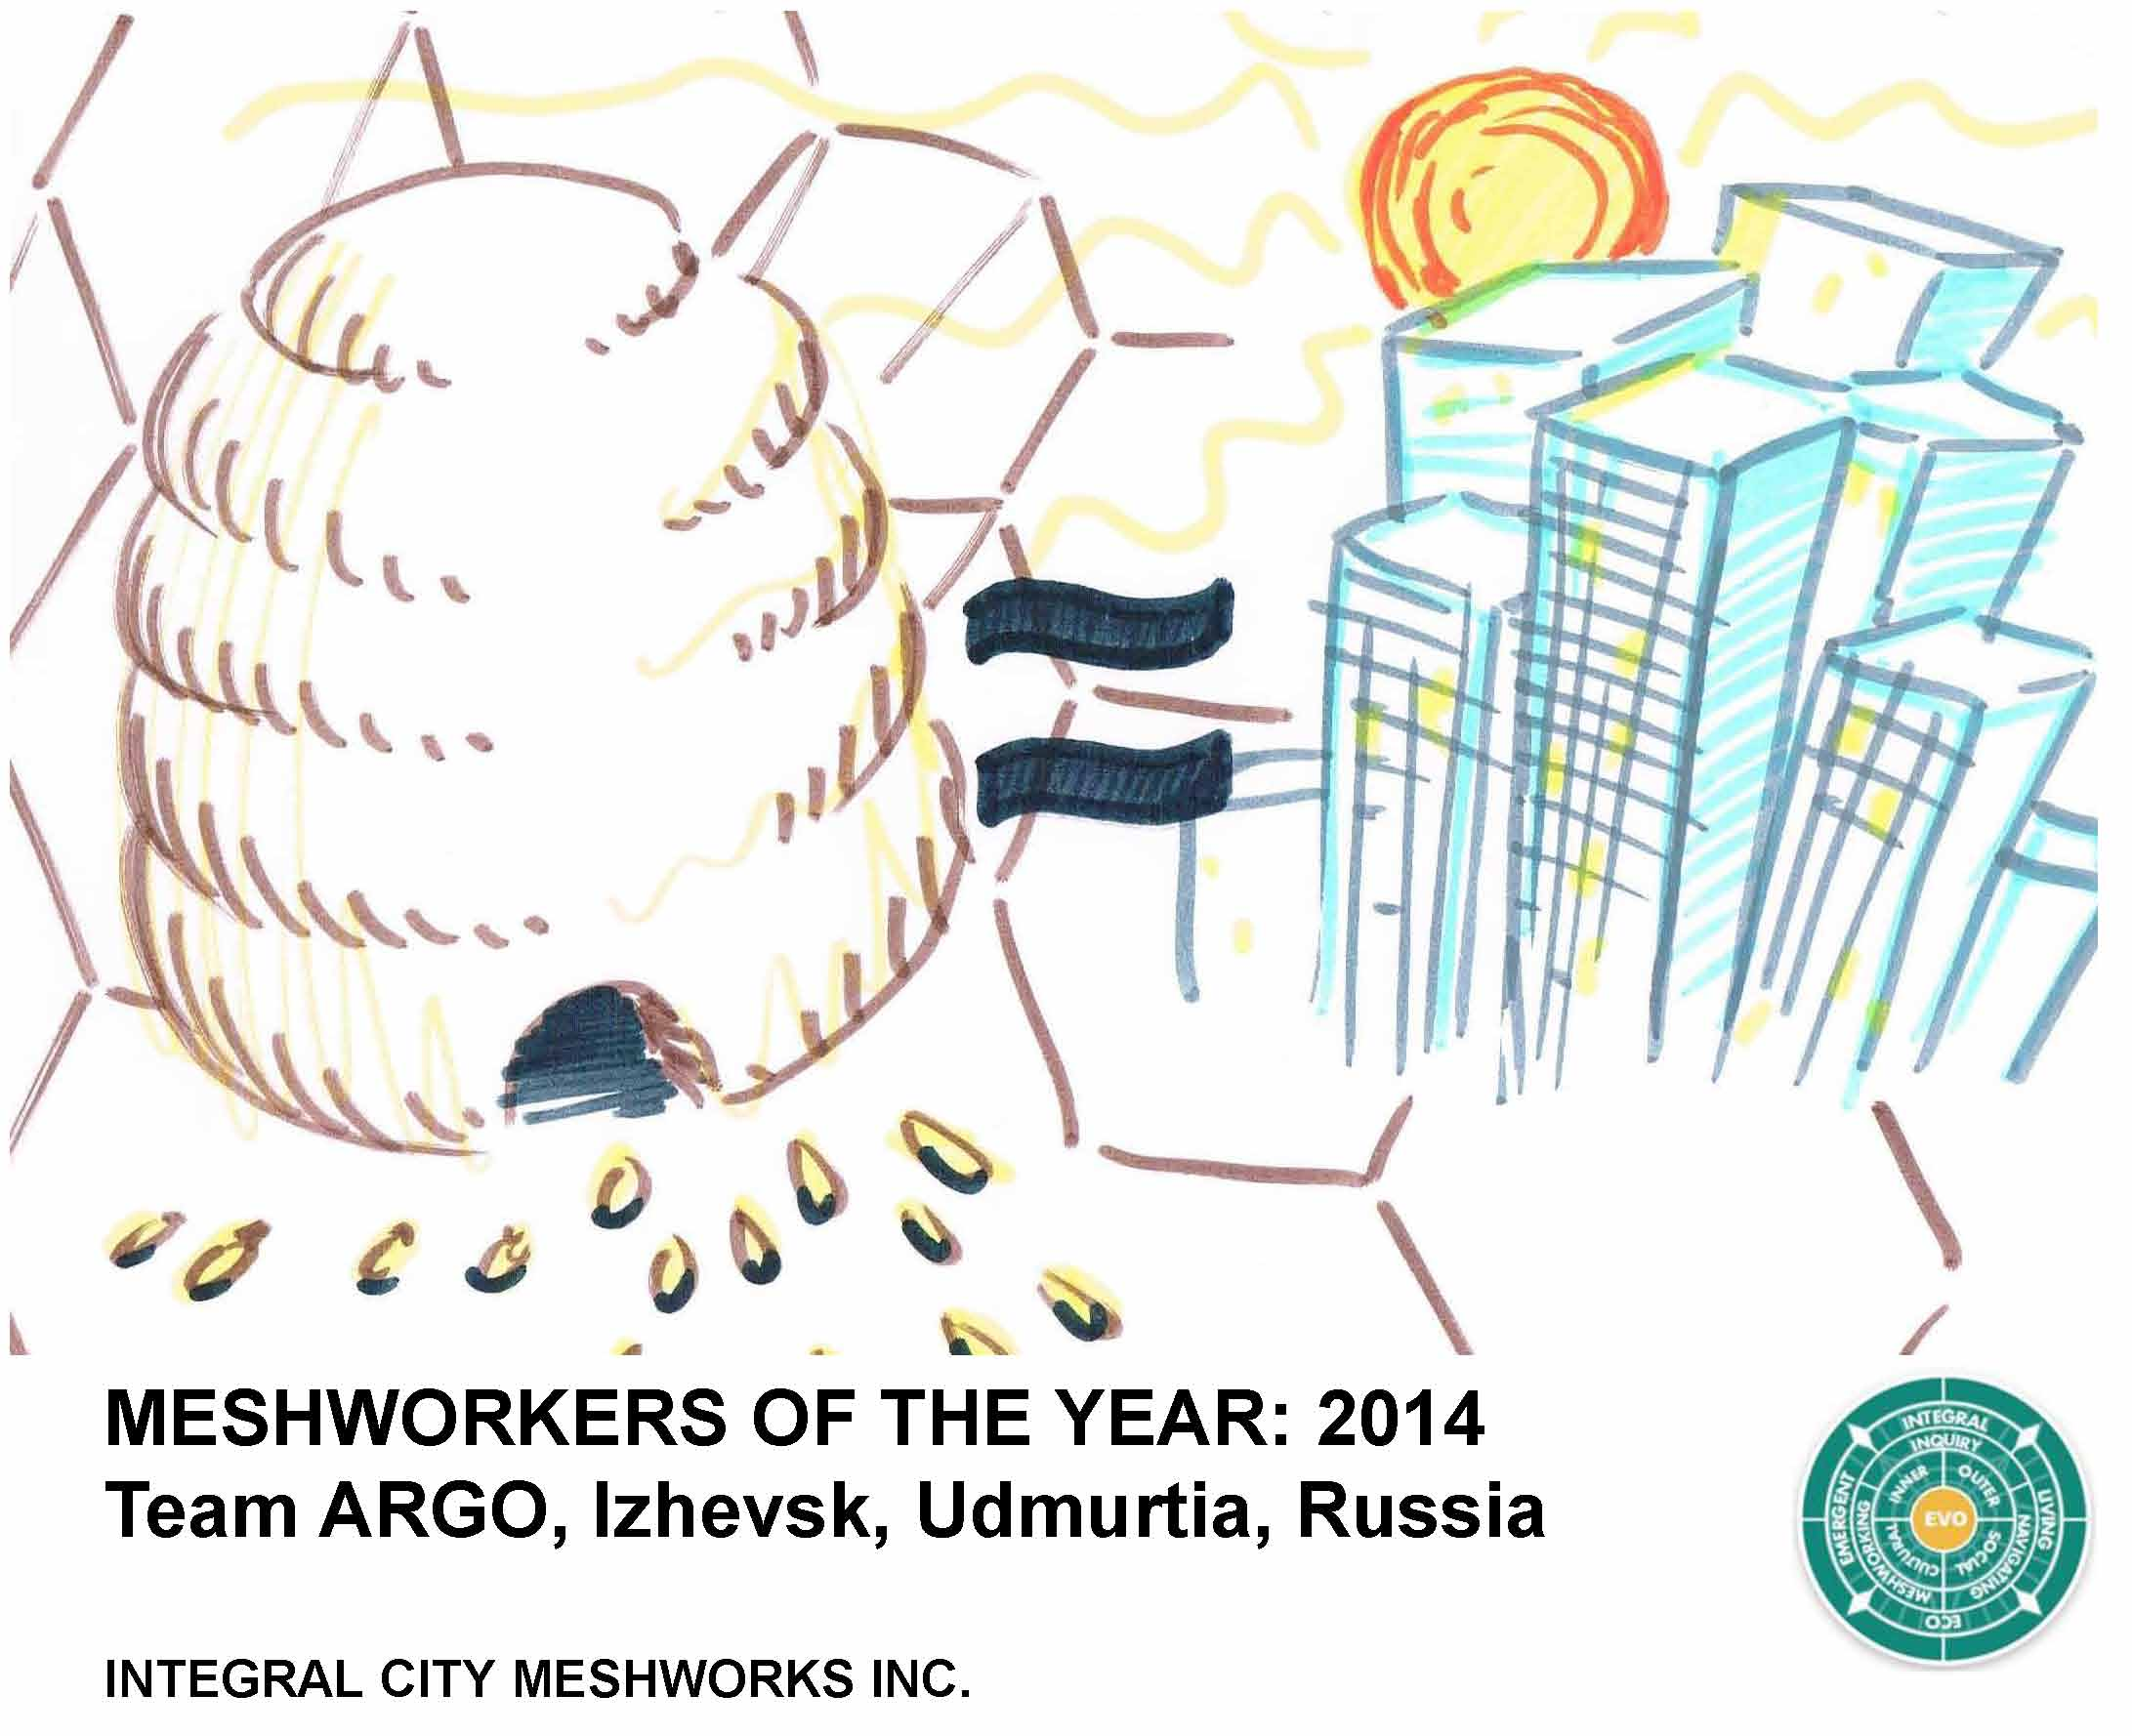 Team ARGO: Meshworker of the Year 2014